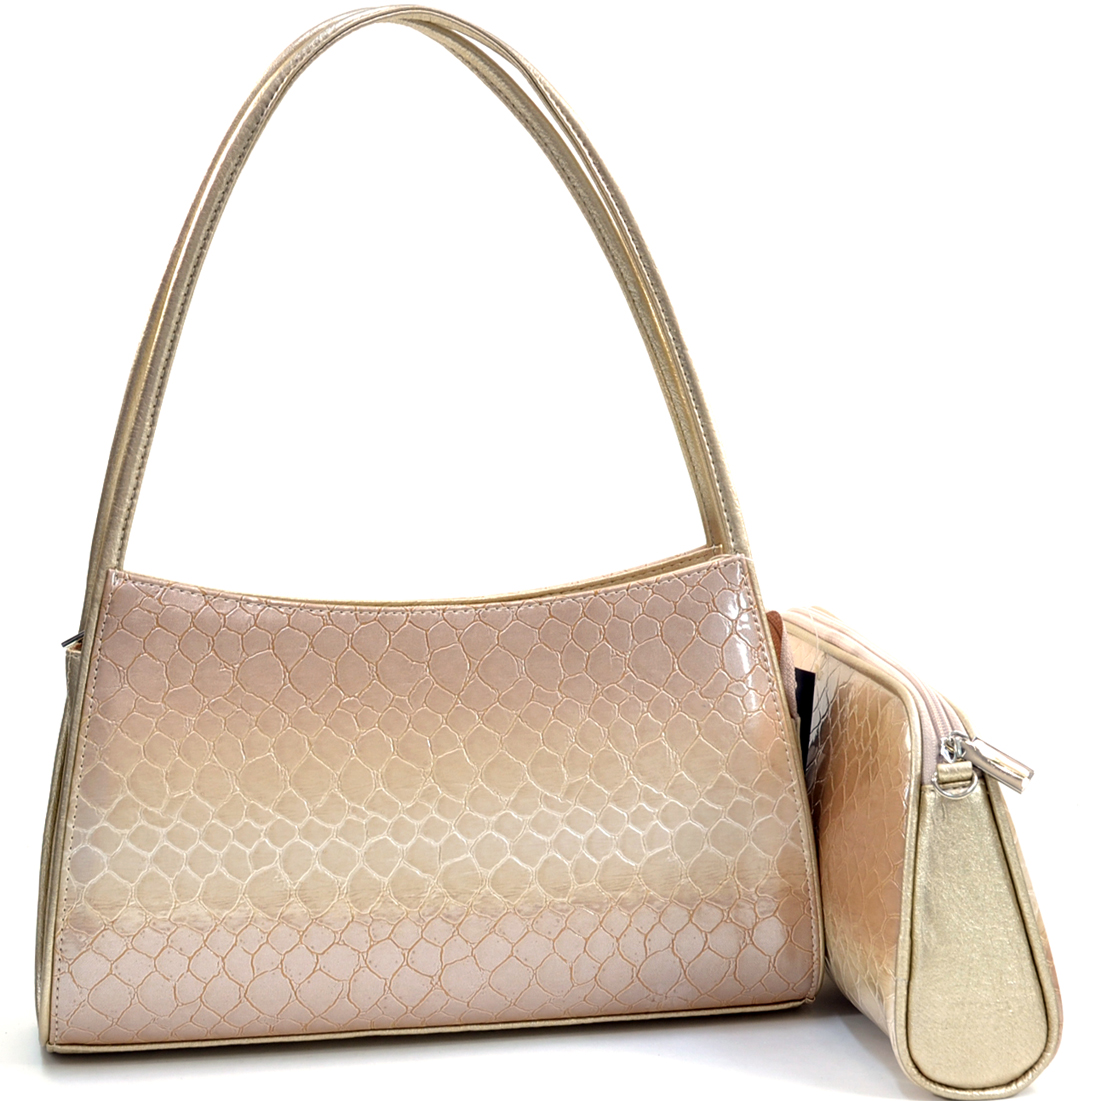 Vani Nagan® Two-Tone Shoulder Bag